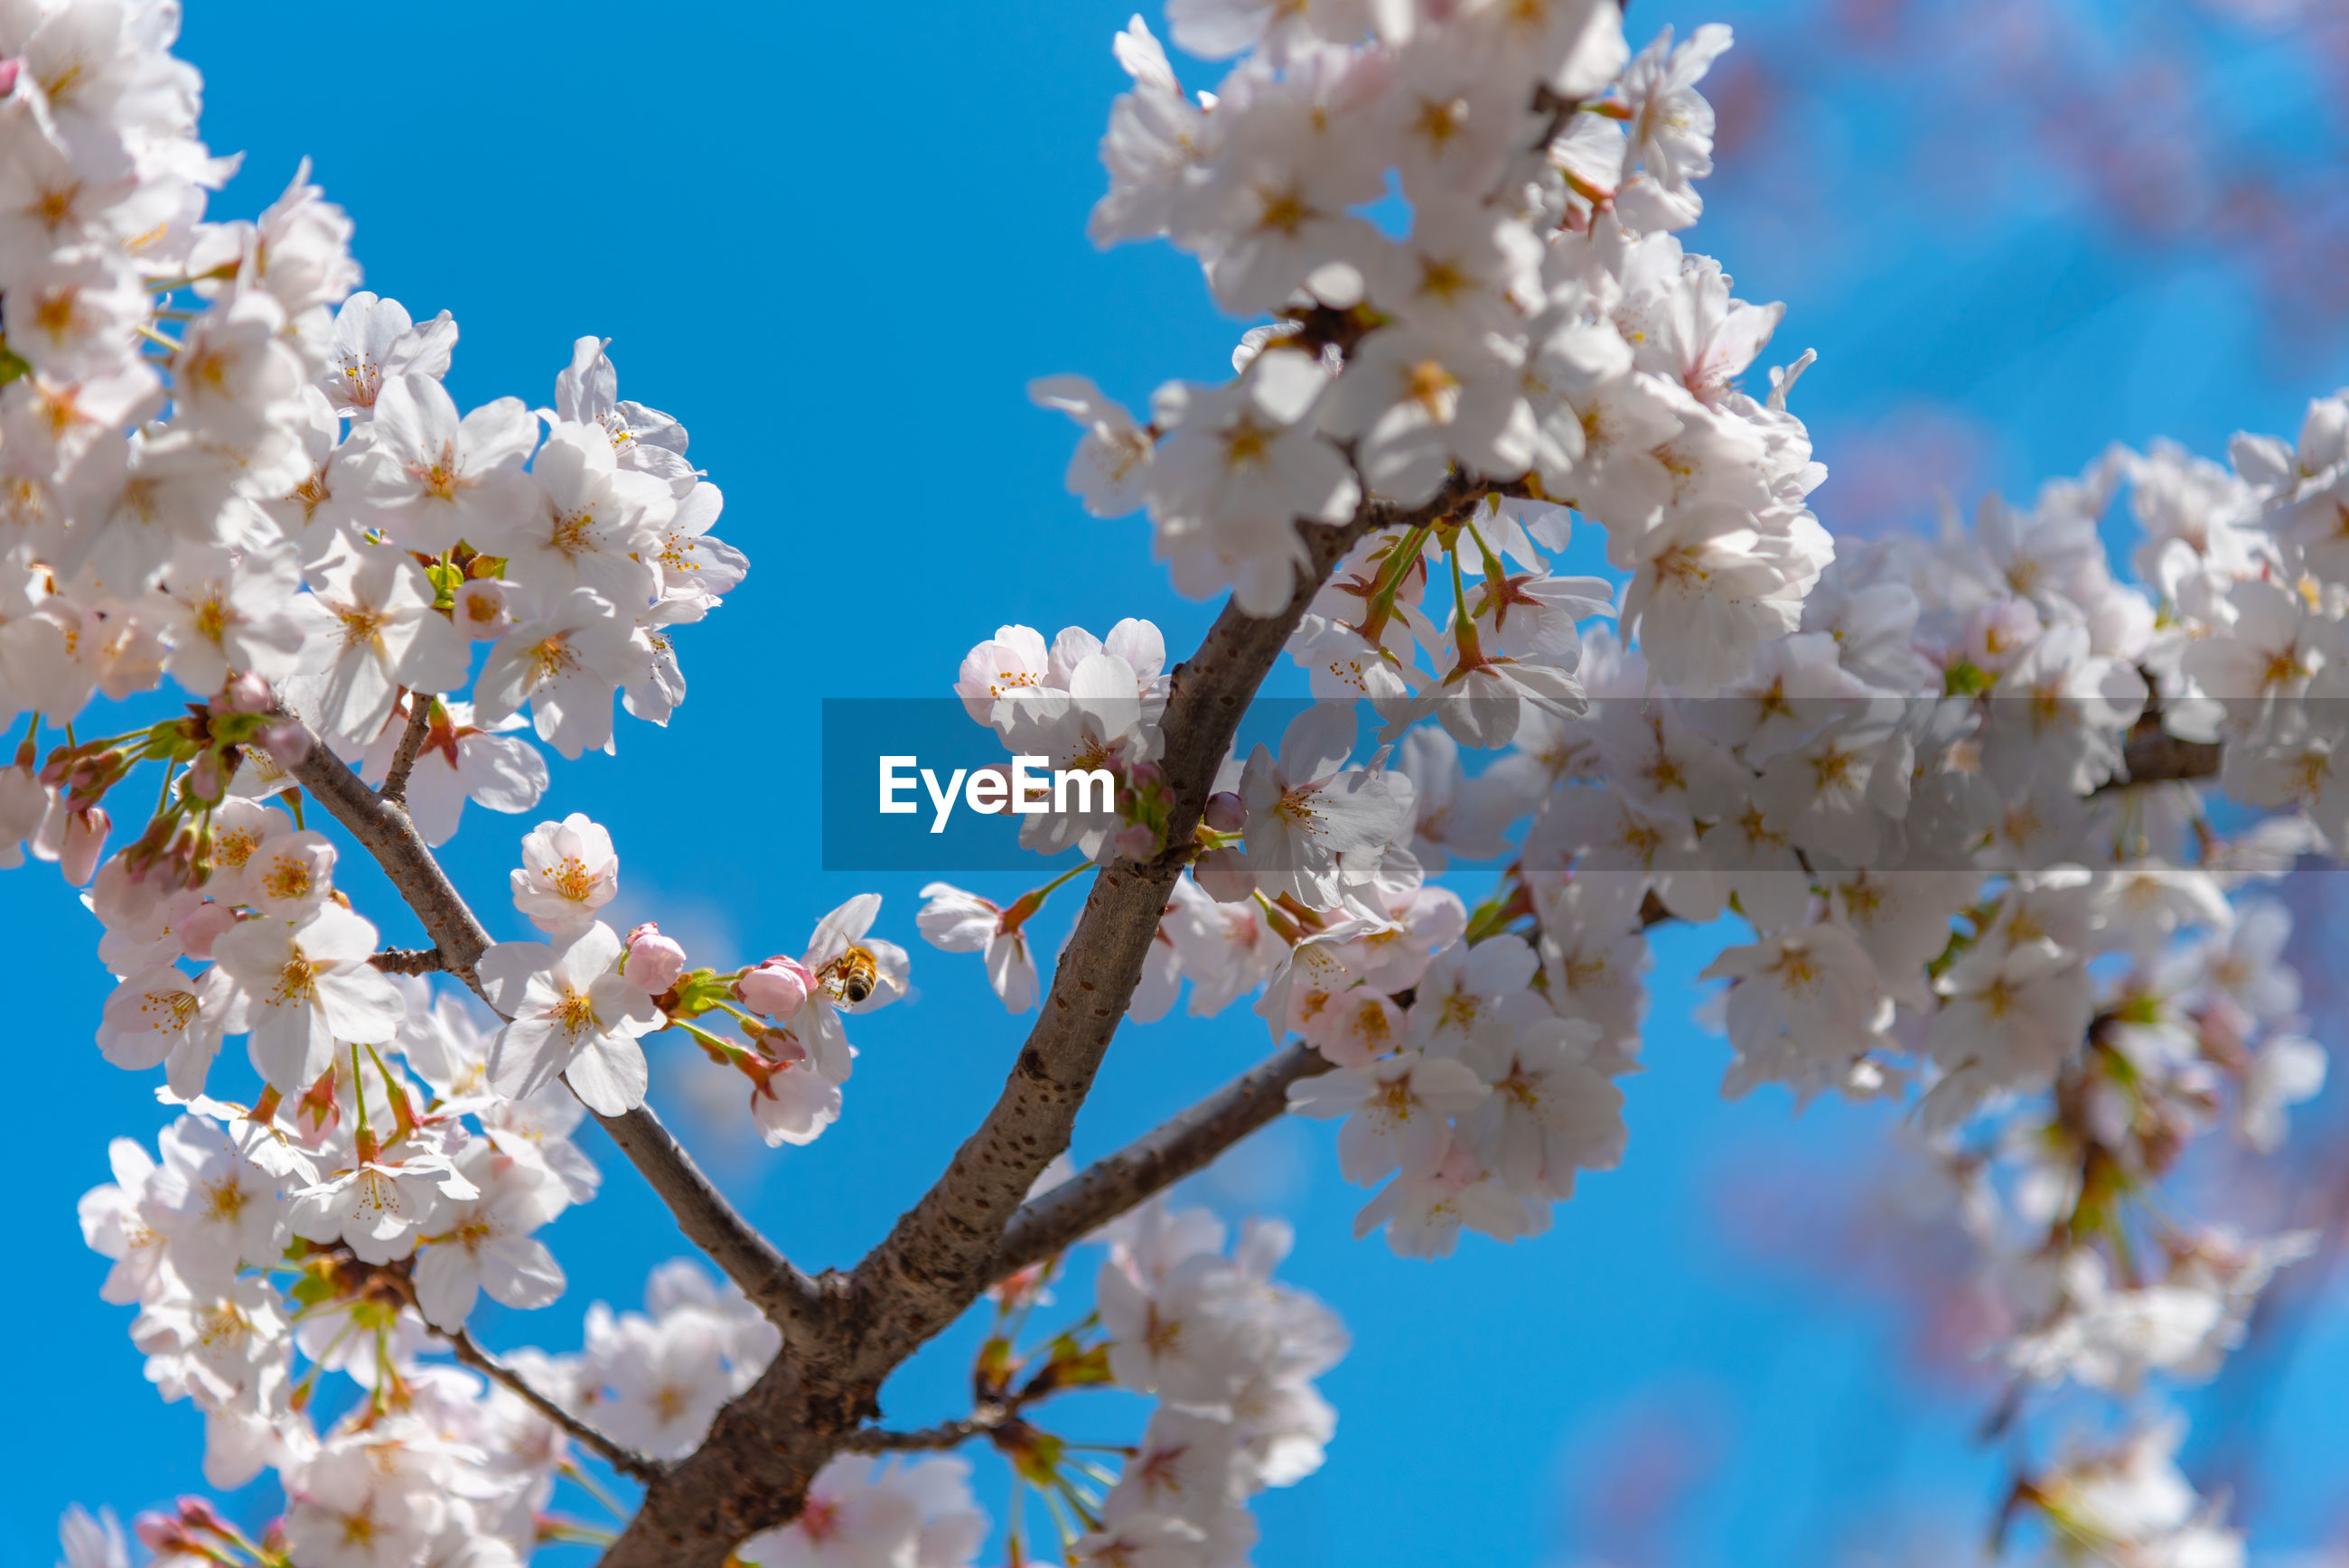 CLOSE-UP OF CHERRY BLOSSOM AGAINST BLUE SKY